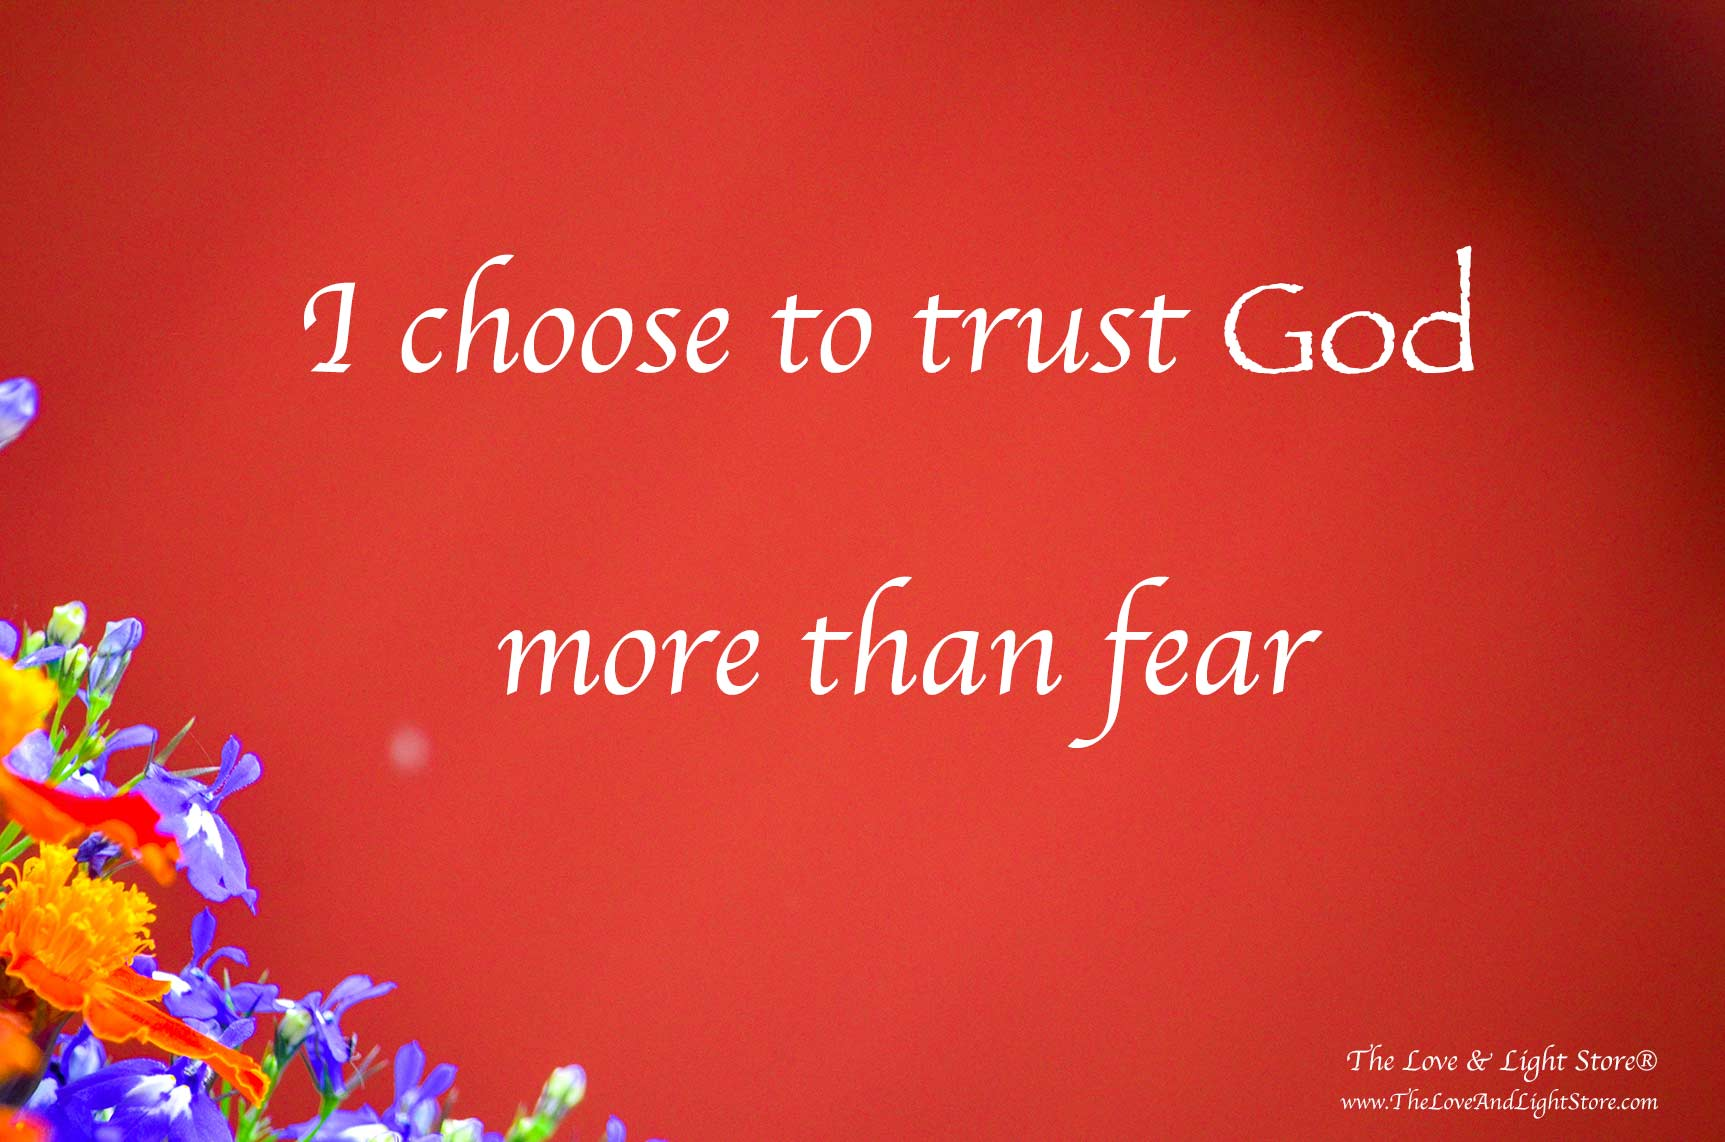 "We lovingly invite you to enjoy this personal blog post by Daniel Roquéo, with the title ""I choose to trust God more than fear""."